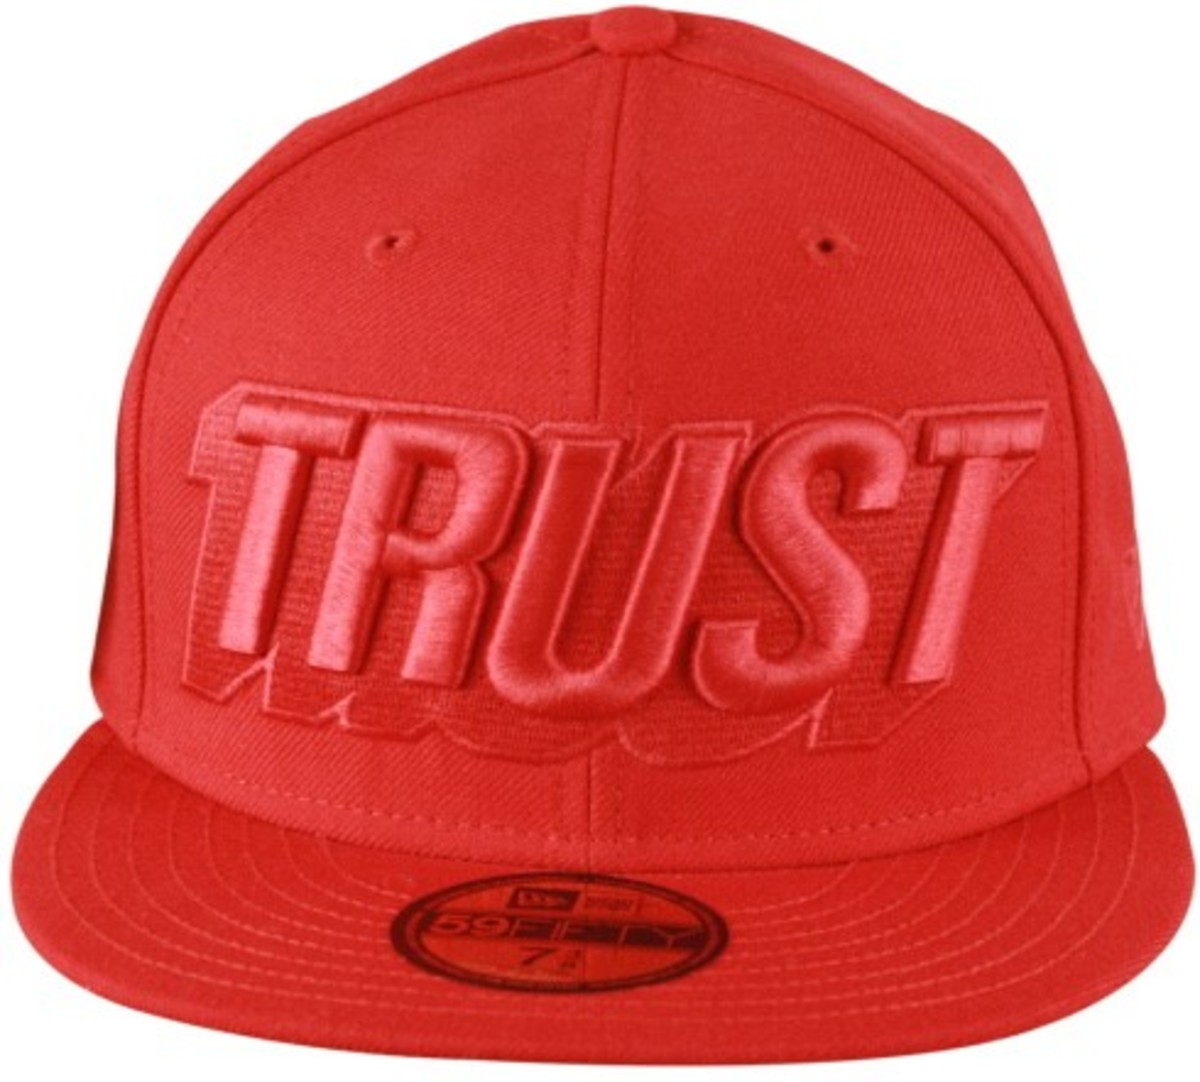 trust_red_front.jpg